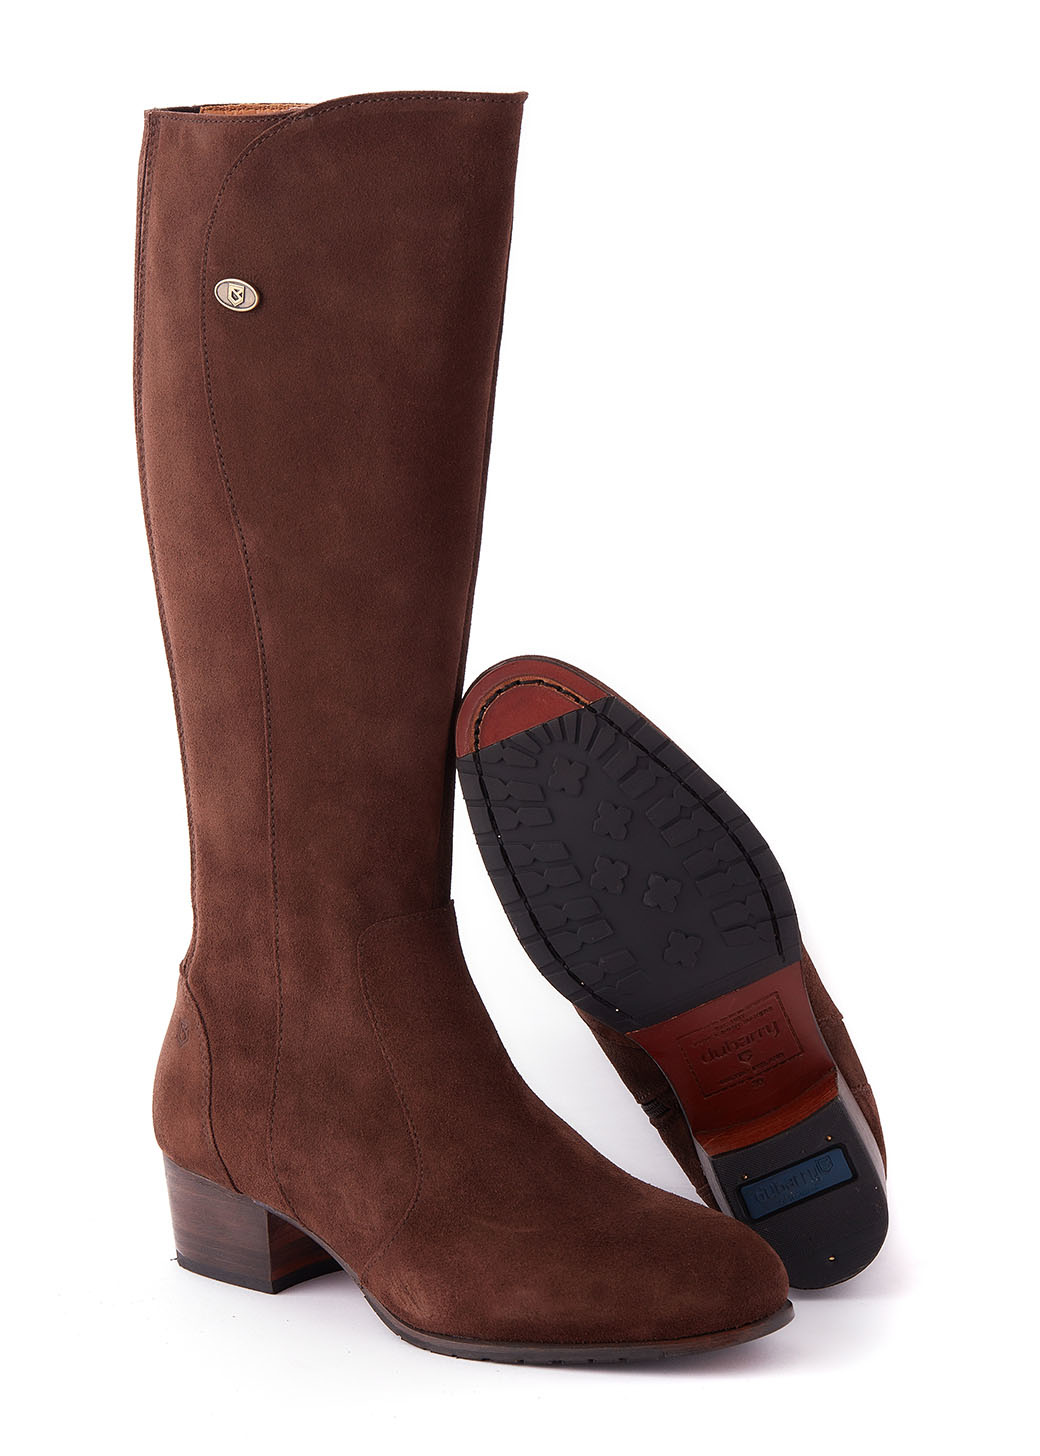 Dubarry Downpatrick Kniehoge Laars - Cigar-4